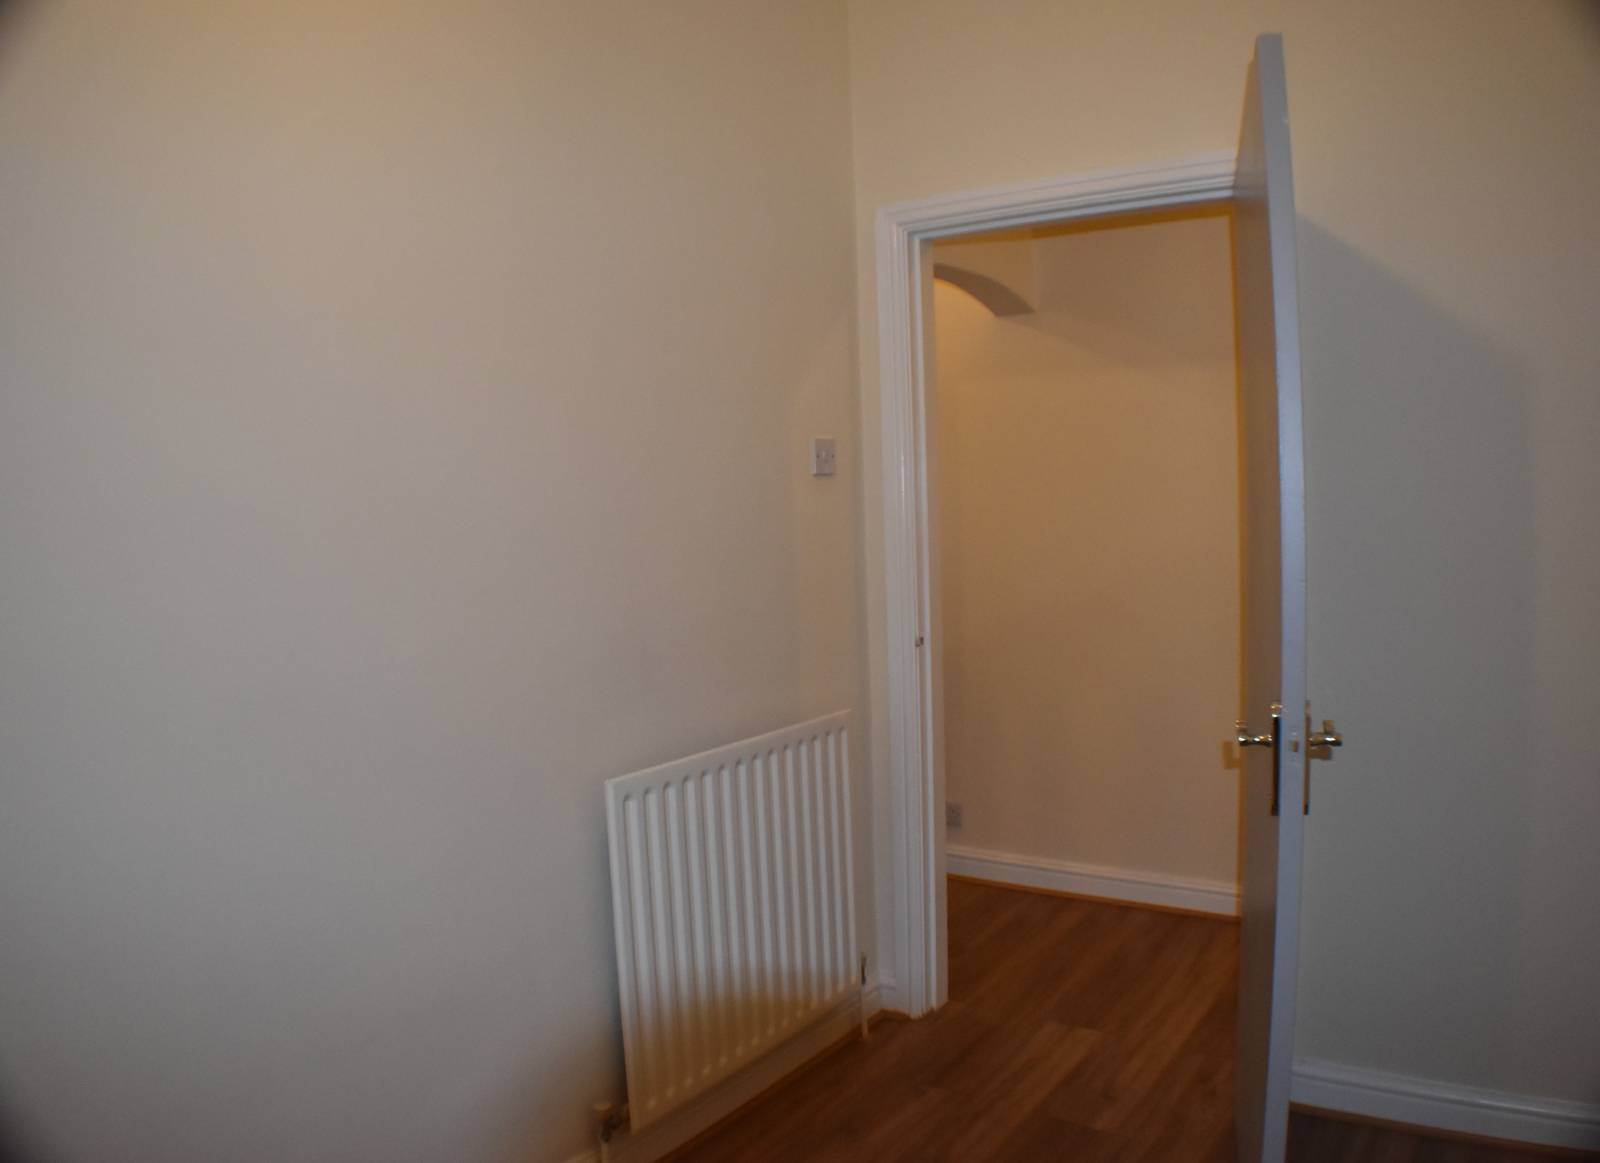 * IDEAL STARTER HOME / PROFESSIONAL LET * One bedroom plus Lounge & study area plus 2nd reception room. New Modern Kitchen/Bathroom. New flooring. Completely refurbished. Secure access to 1st & 2nd Floor accommodation. DASH landlord